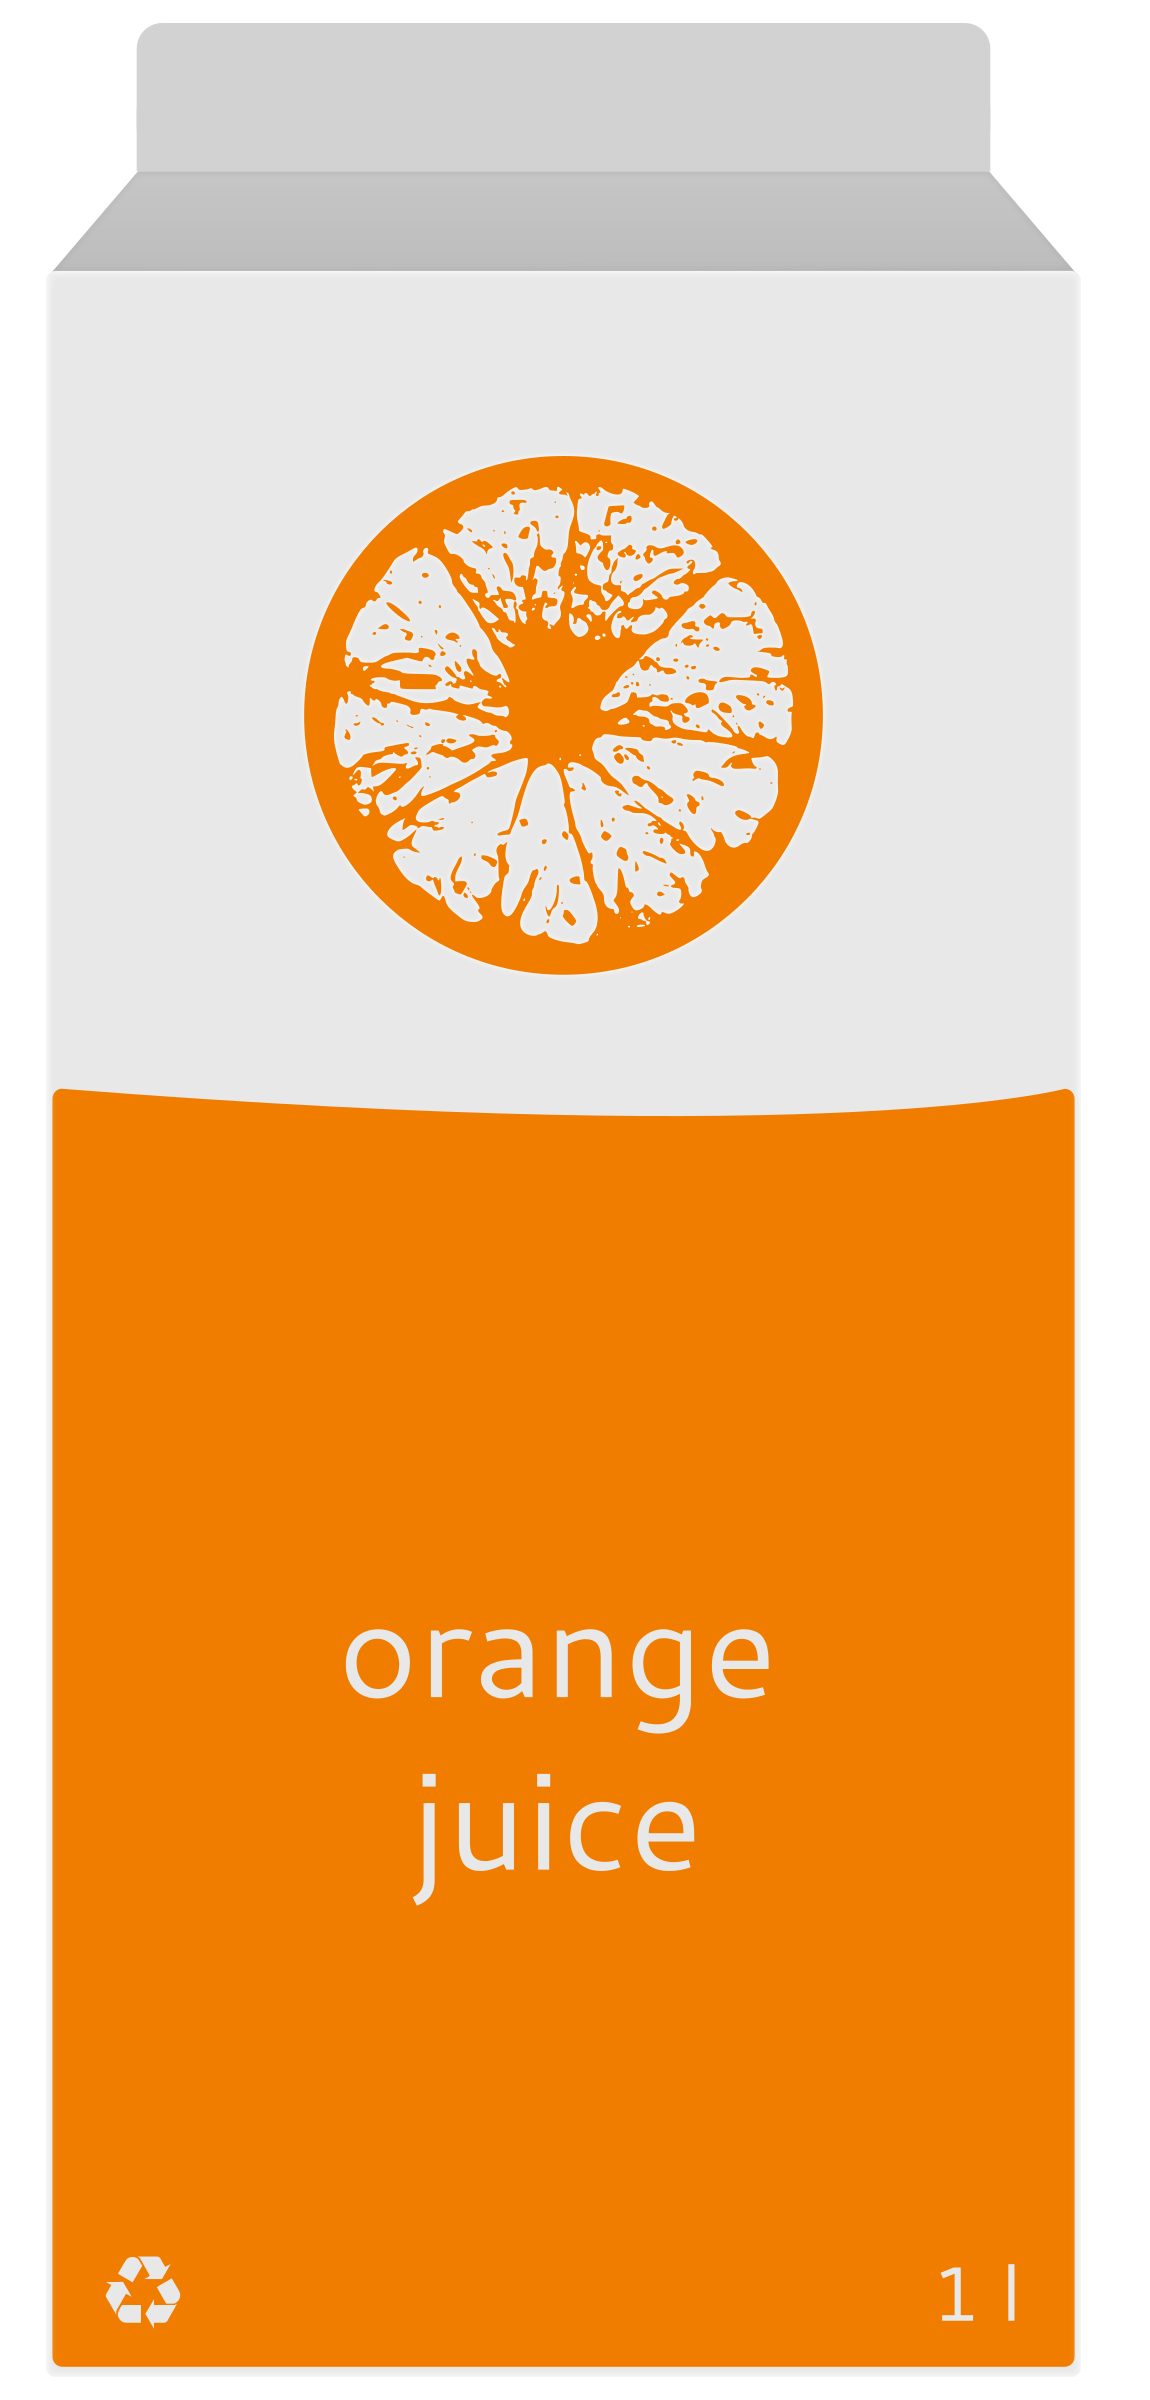 Orange juice carton by Mirek2